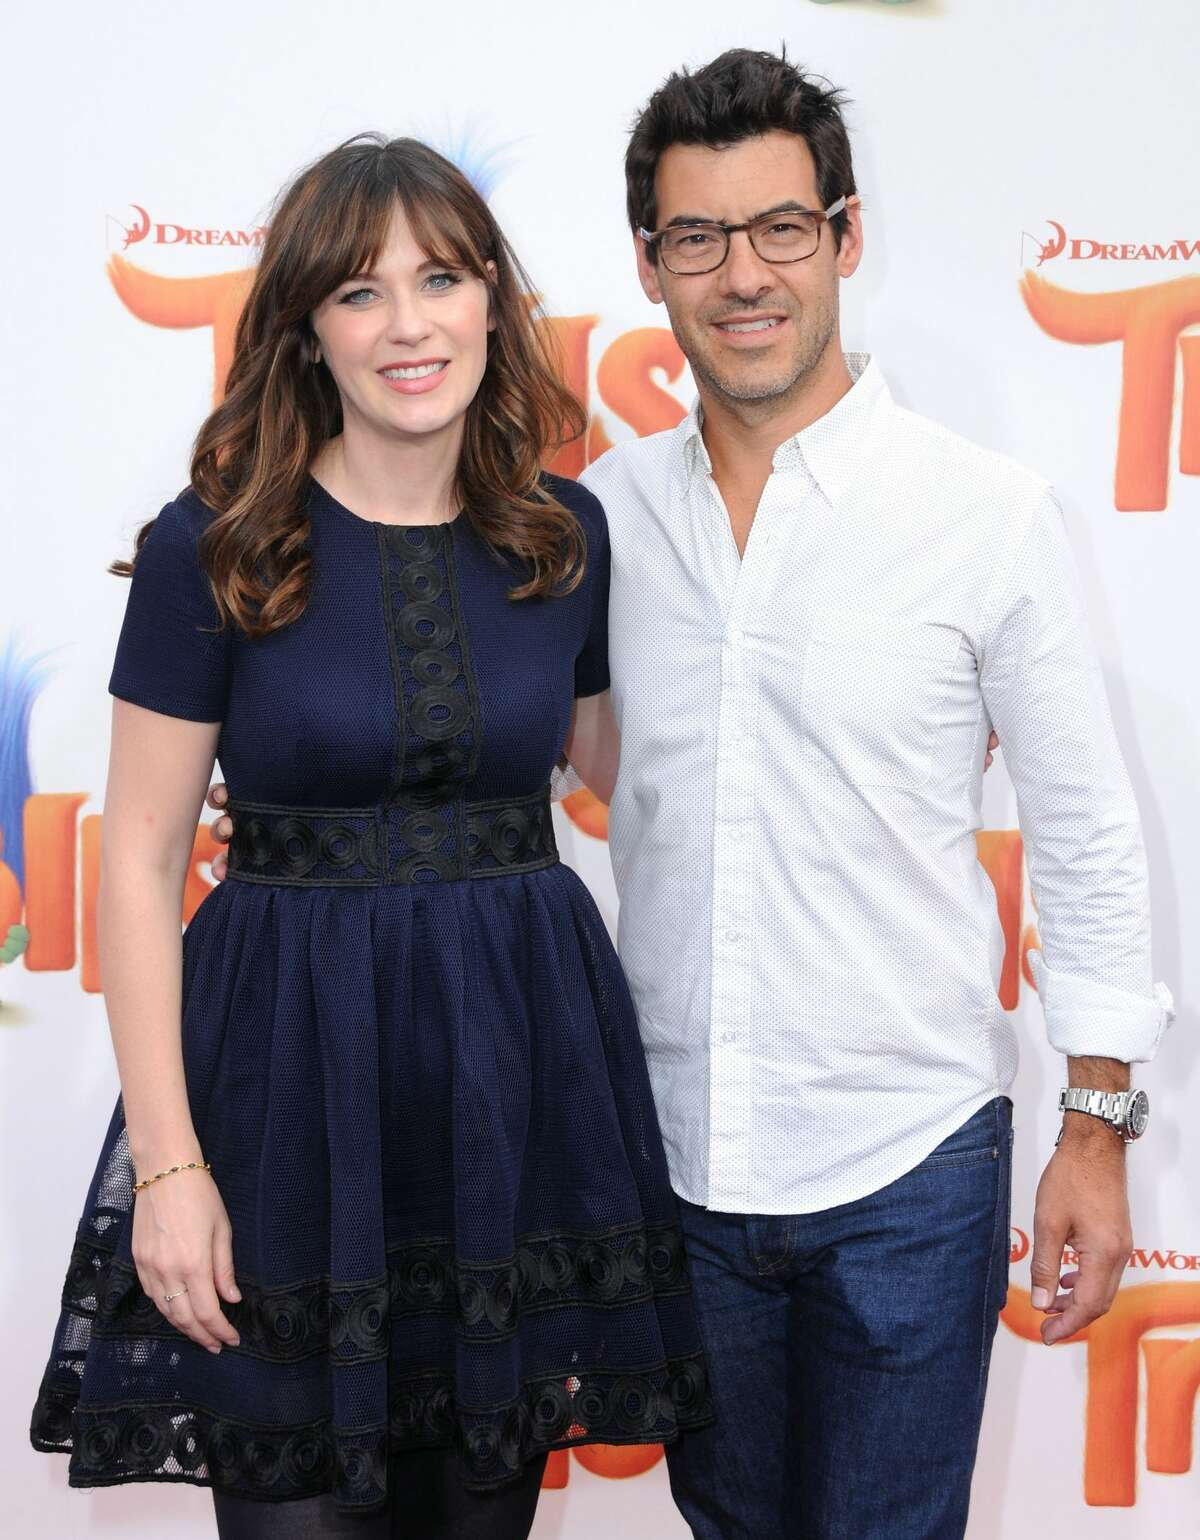 Announcement Date: Jan. 26, 2017US Weekly broke the news that Actress Zooey Deschanel and Jacob Pechenik are expecting their second child.